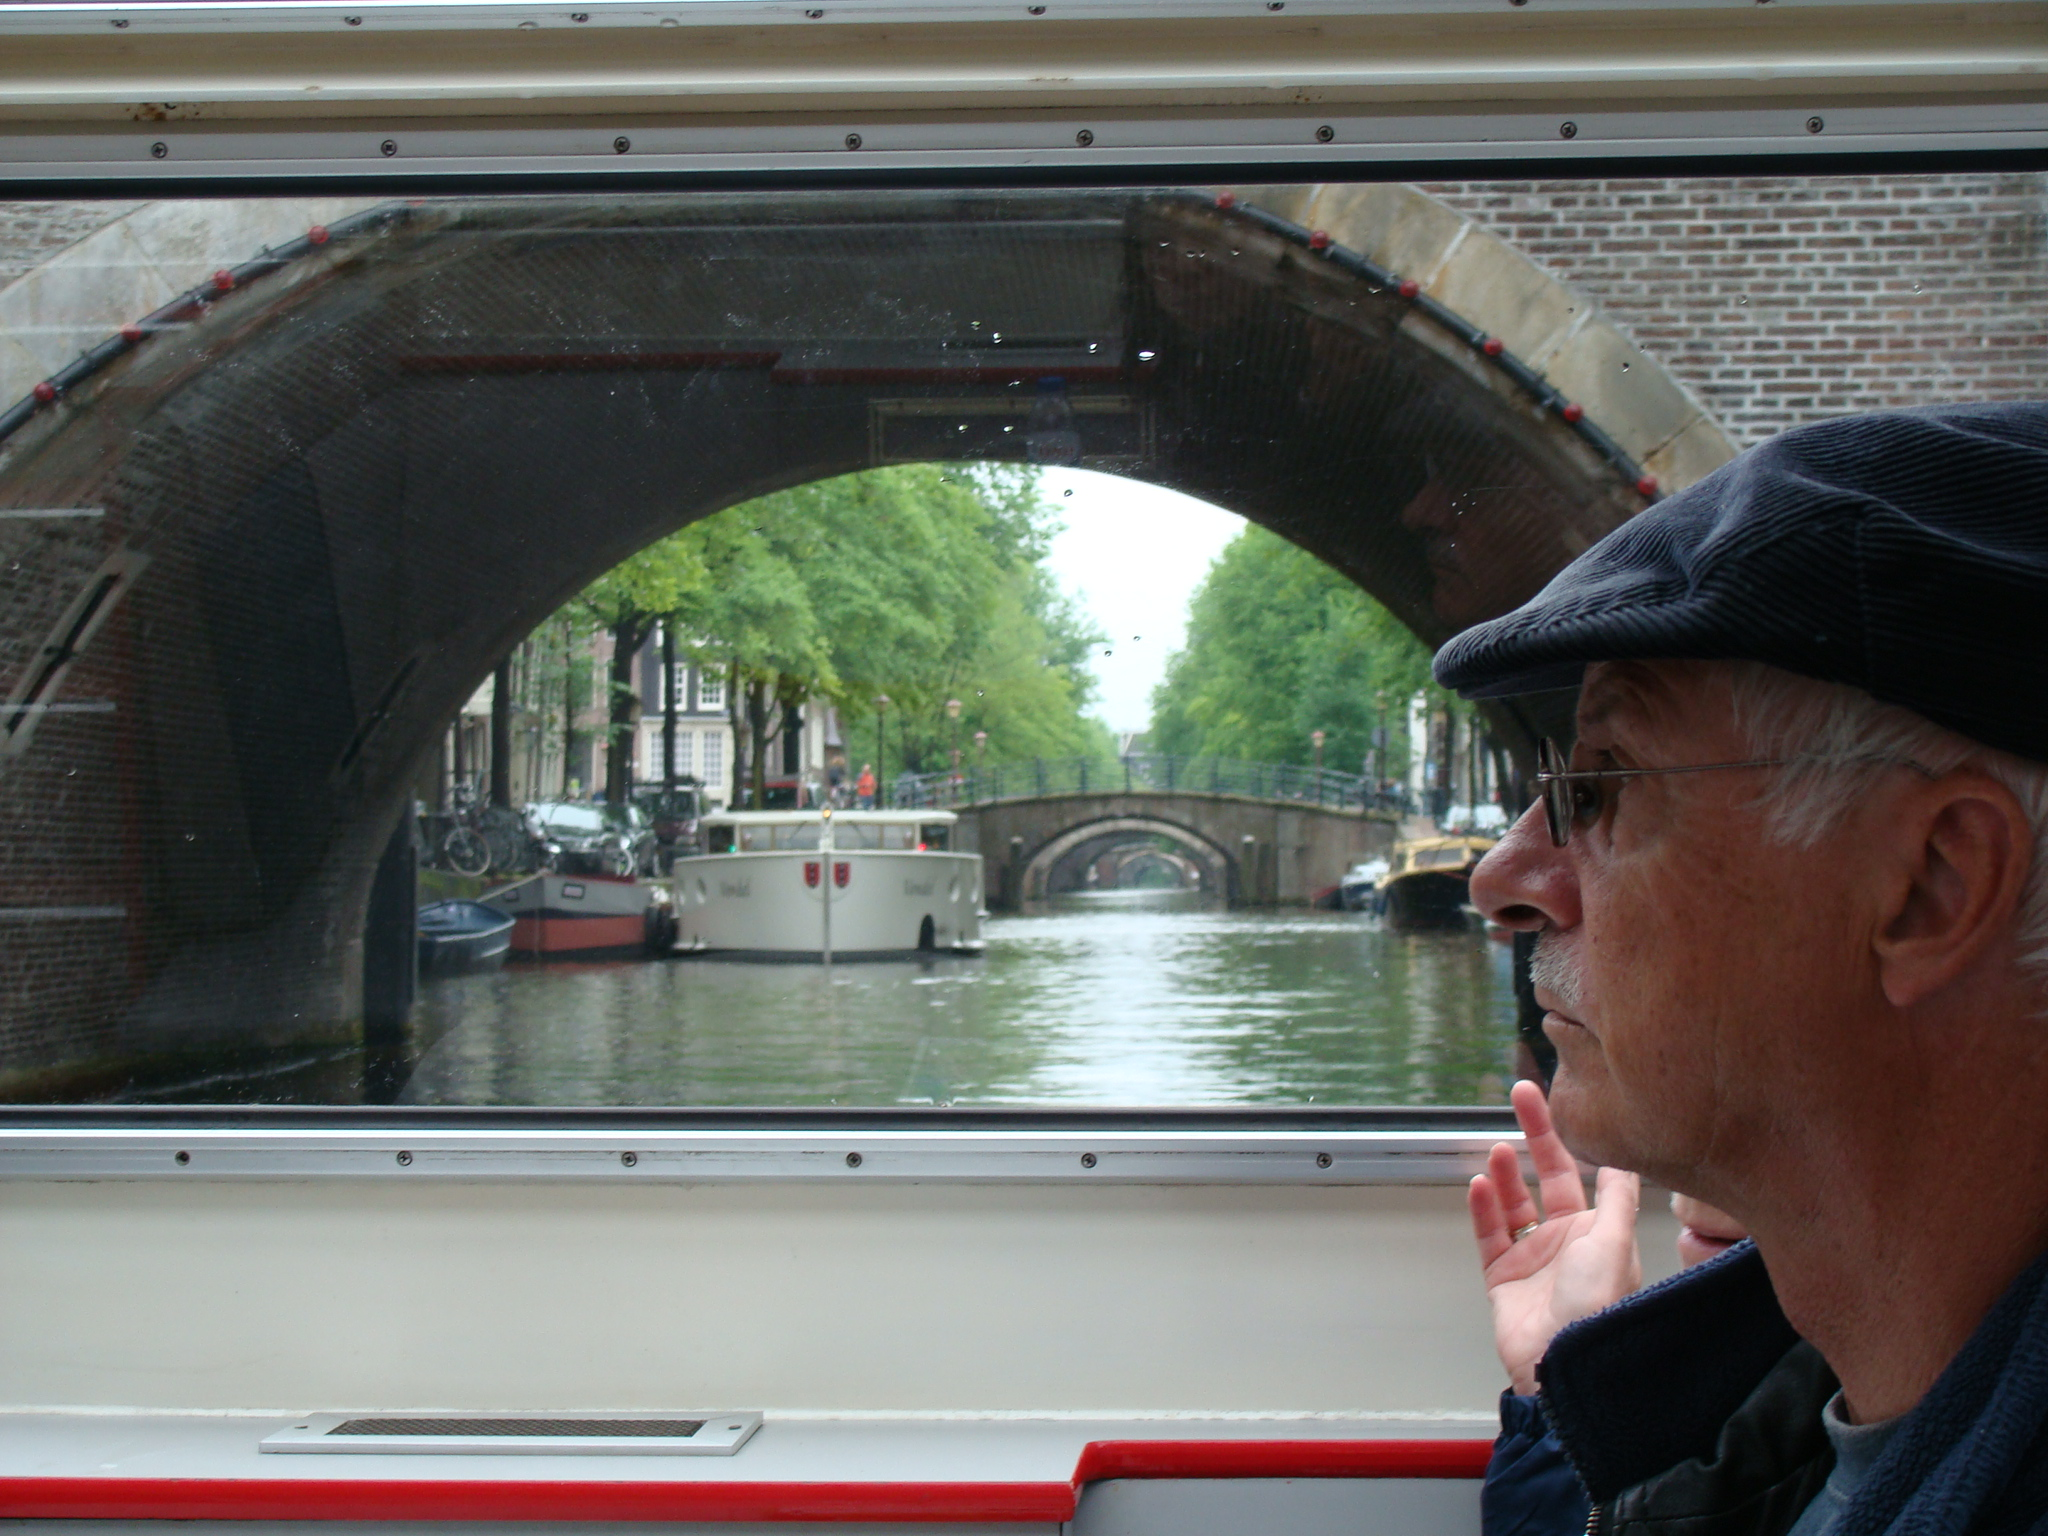 [PH] from the boat on the canal, Amsterdam, Netherland, 20080516